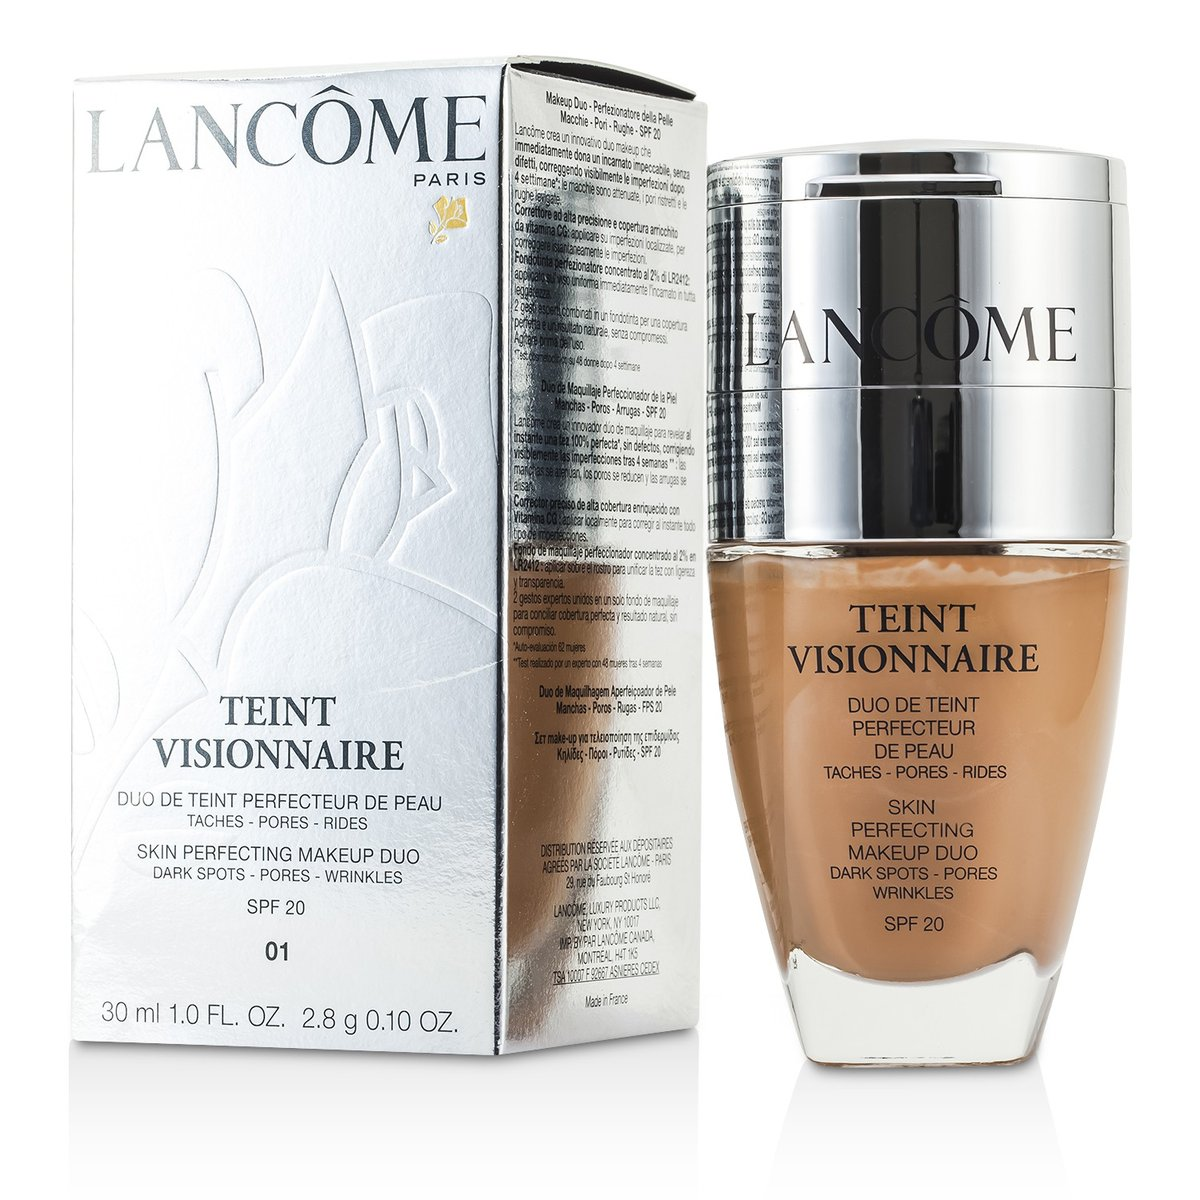 Lancome | Teint Visionnaire Skin Perfecting Make Up Duo SPF